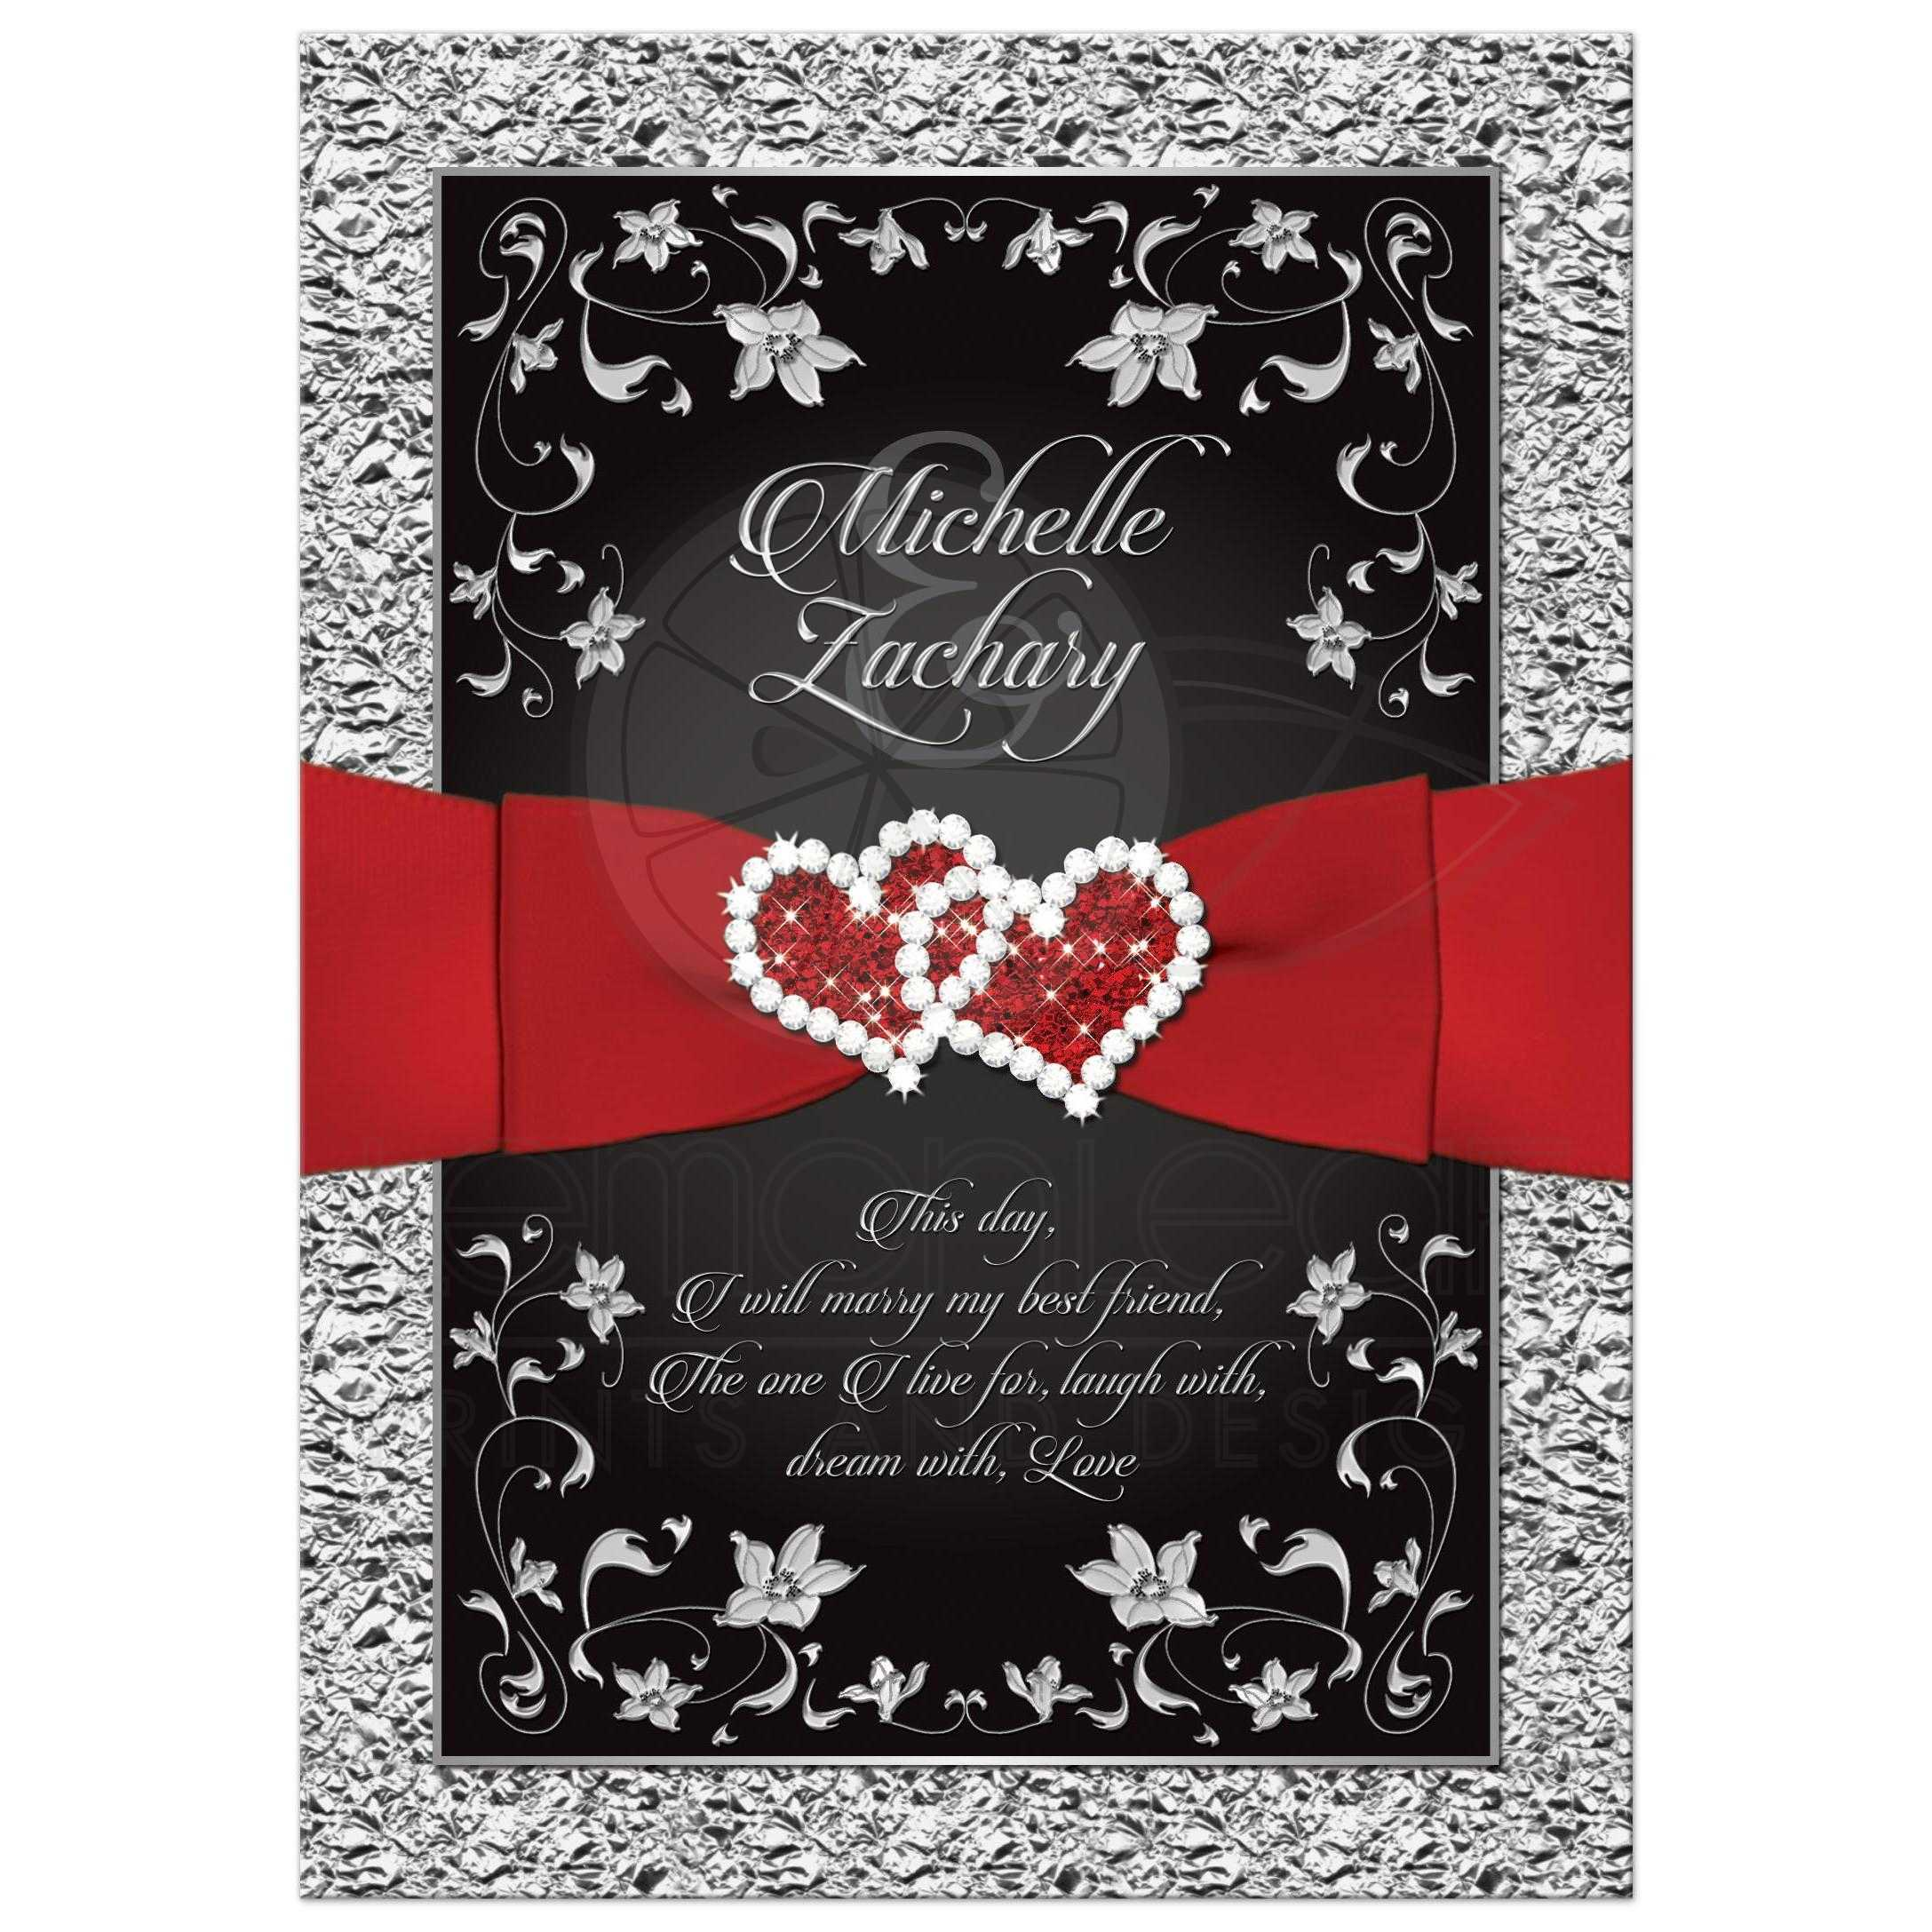 Wedding Invitation | Black, Red, Silver Floral | Joined ...